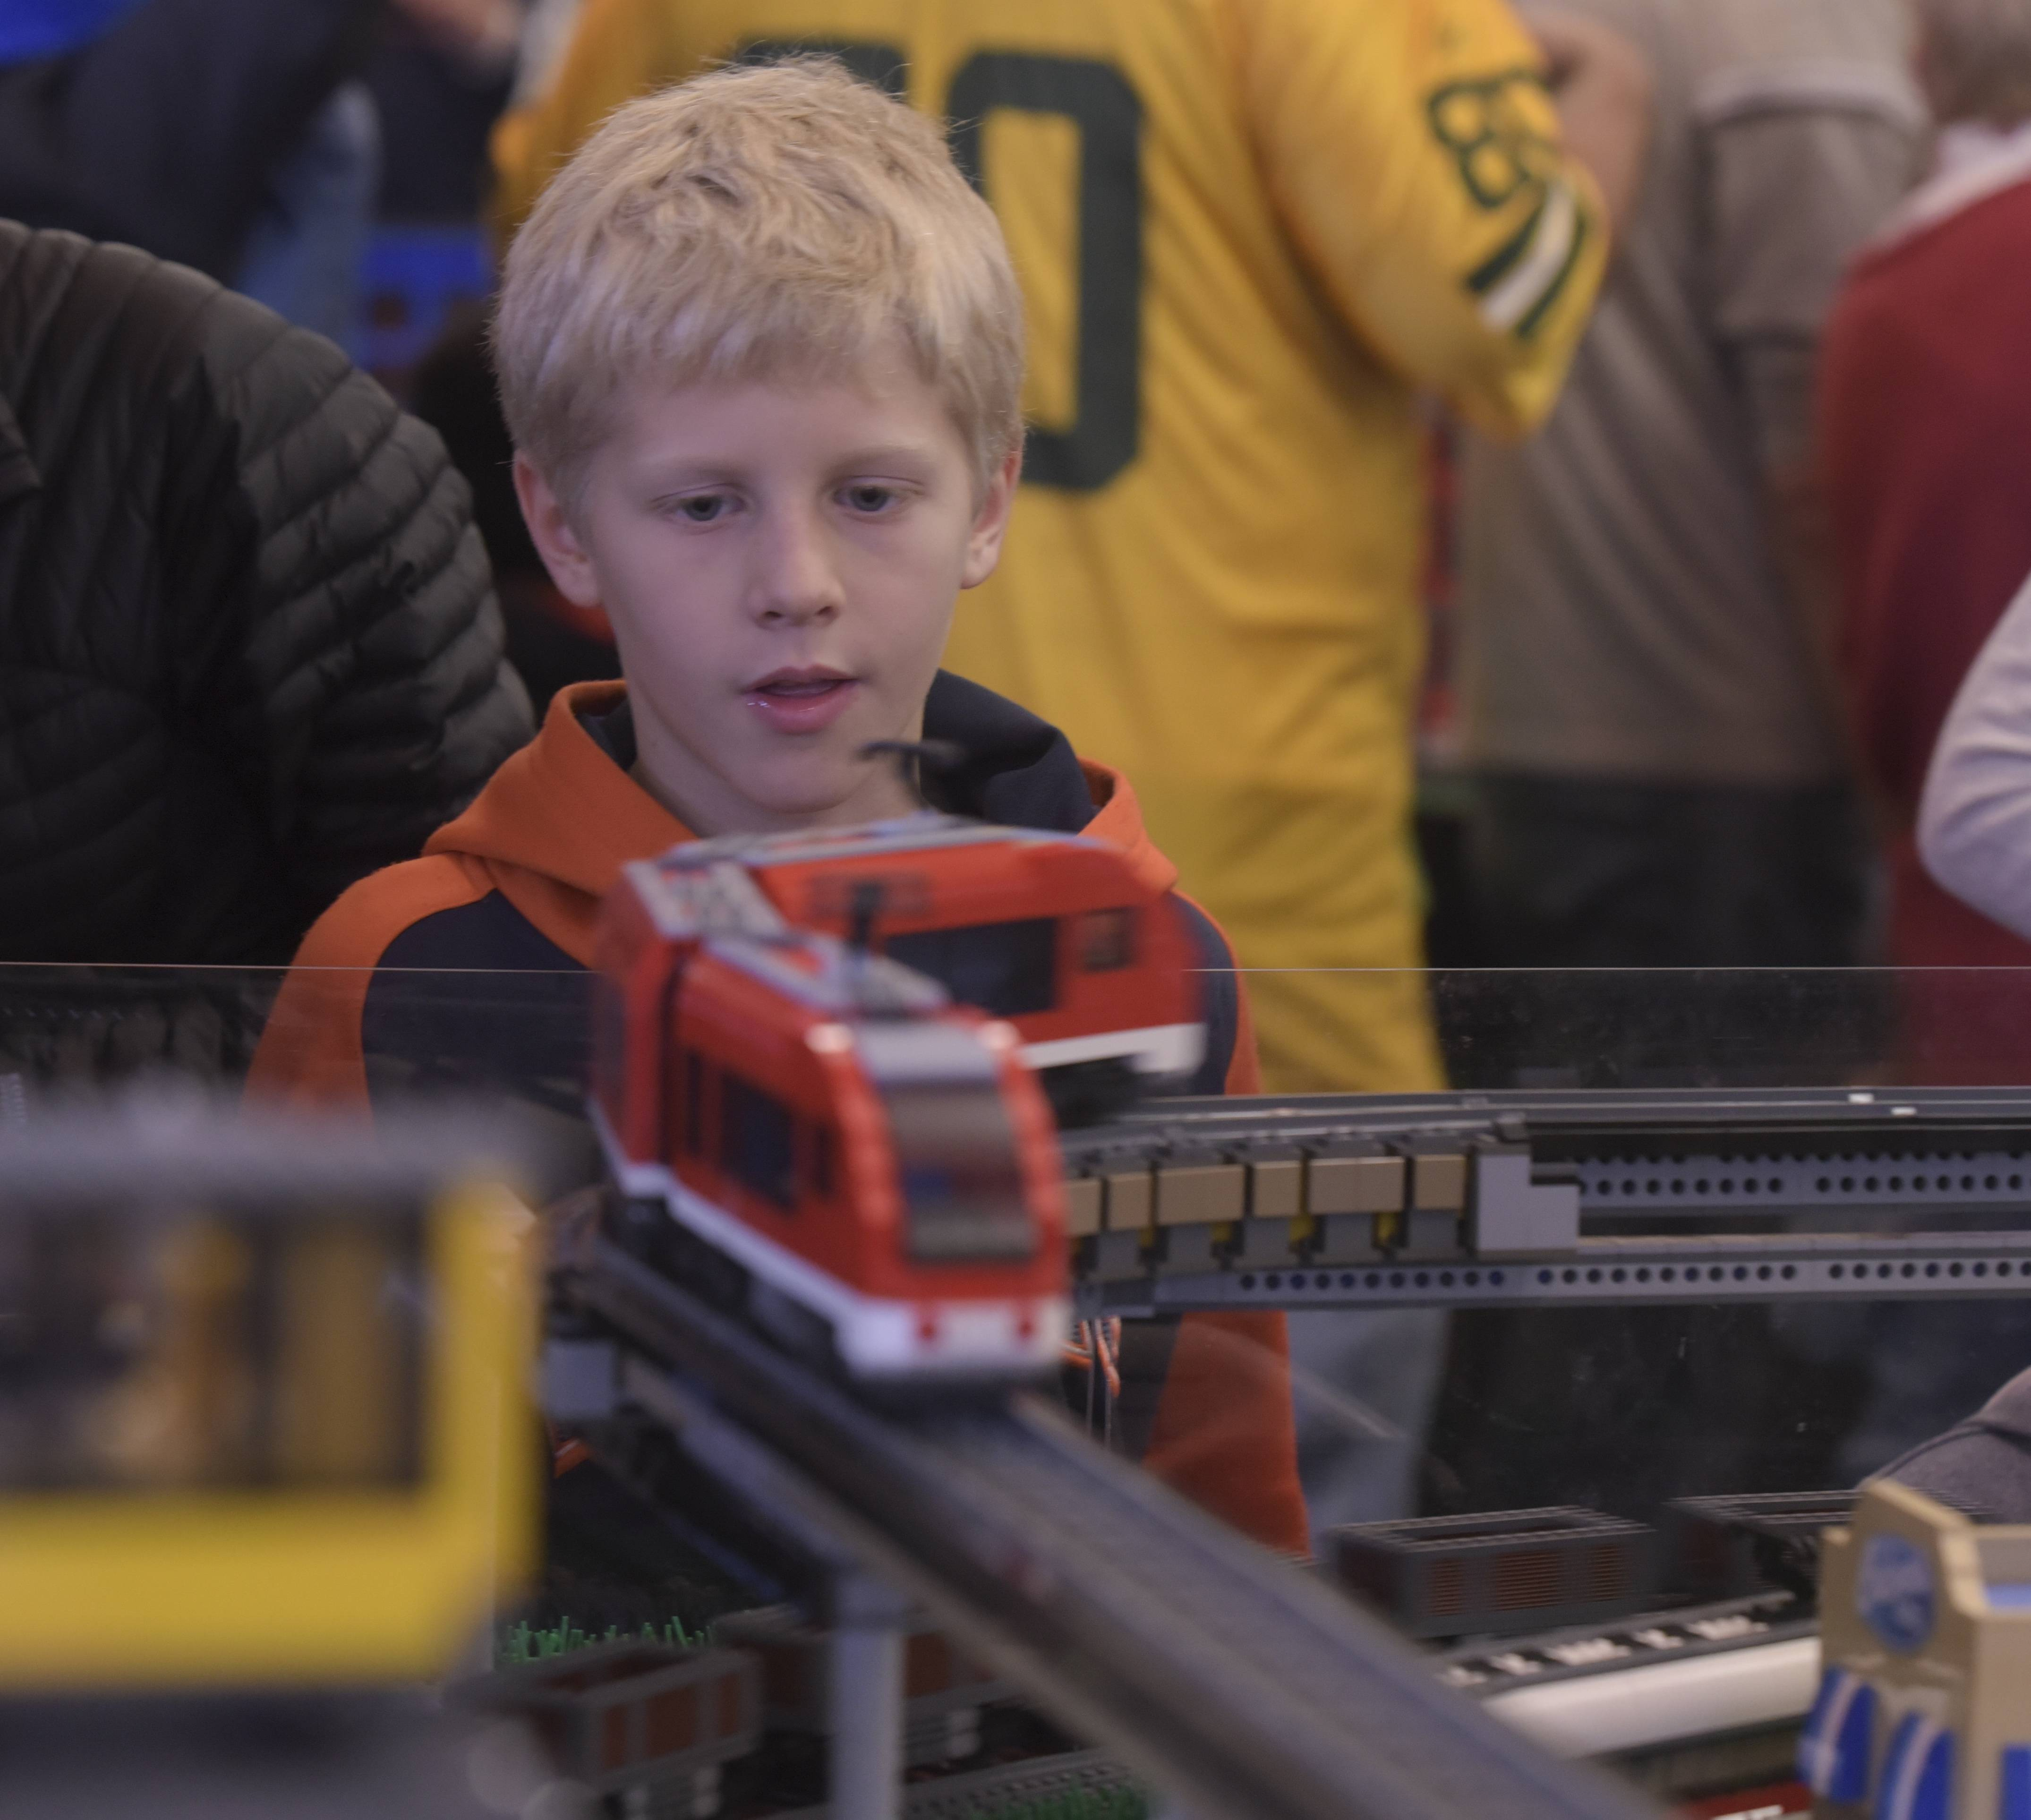 Billy Brouwer, 10, of Naperville checks out a Lego creation Sunday at the 14th annual Lego Train Show at Cantigny Park. The huge Lego displays were created by members of the Northern Illinois Lego Train Club.